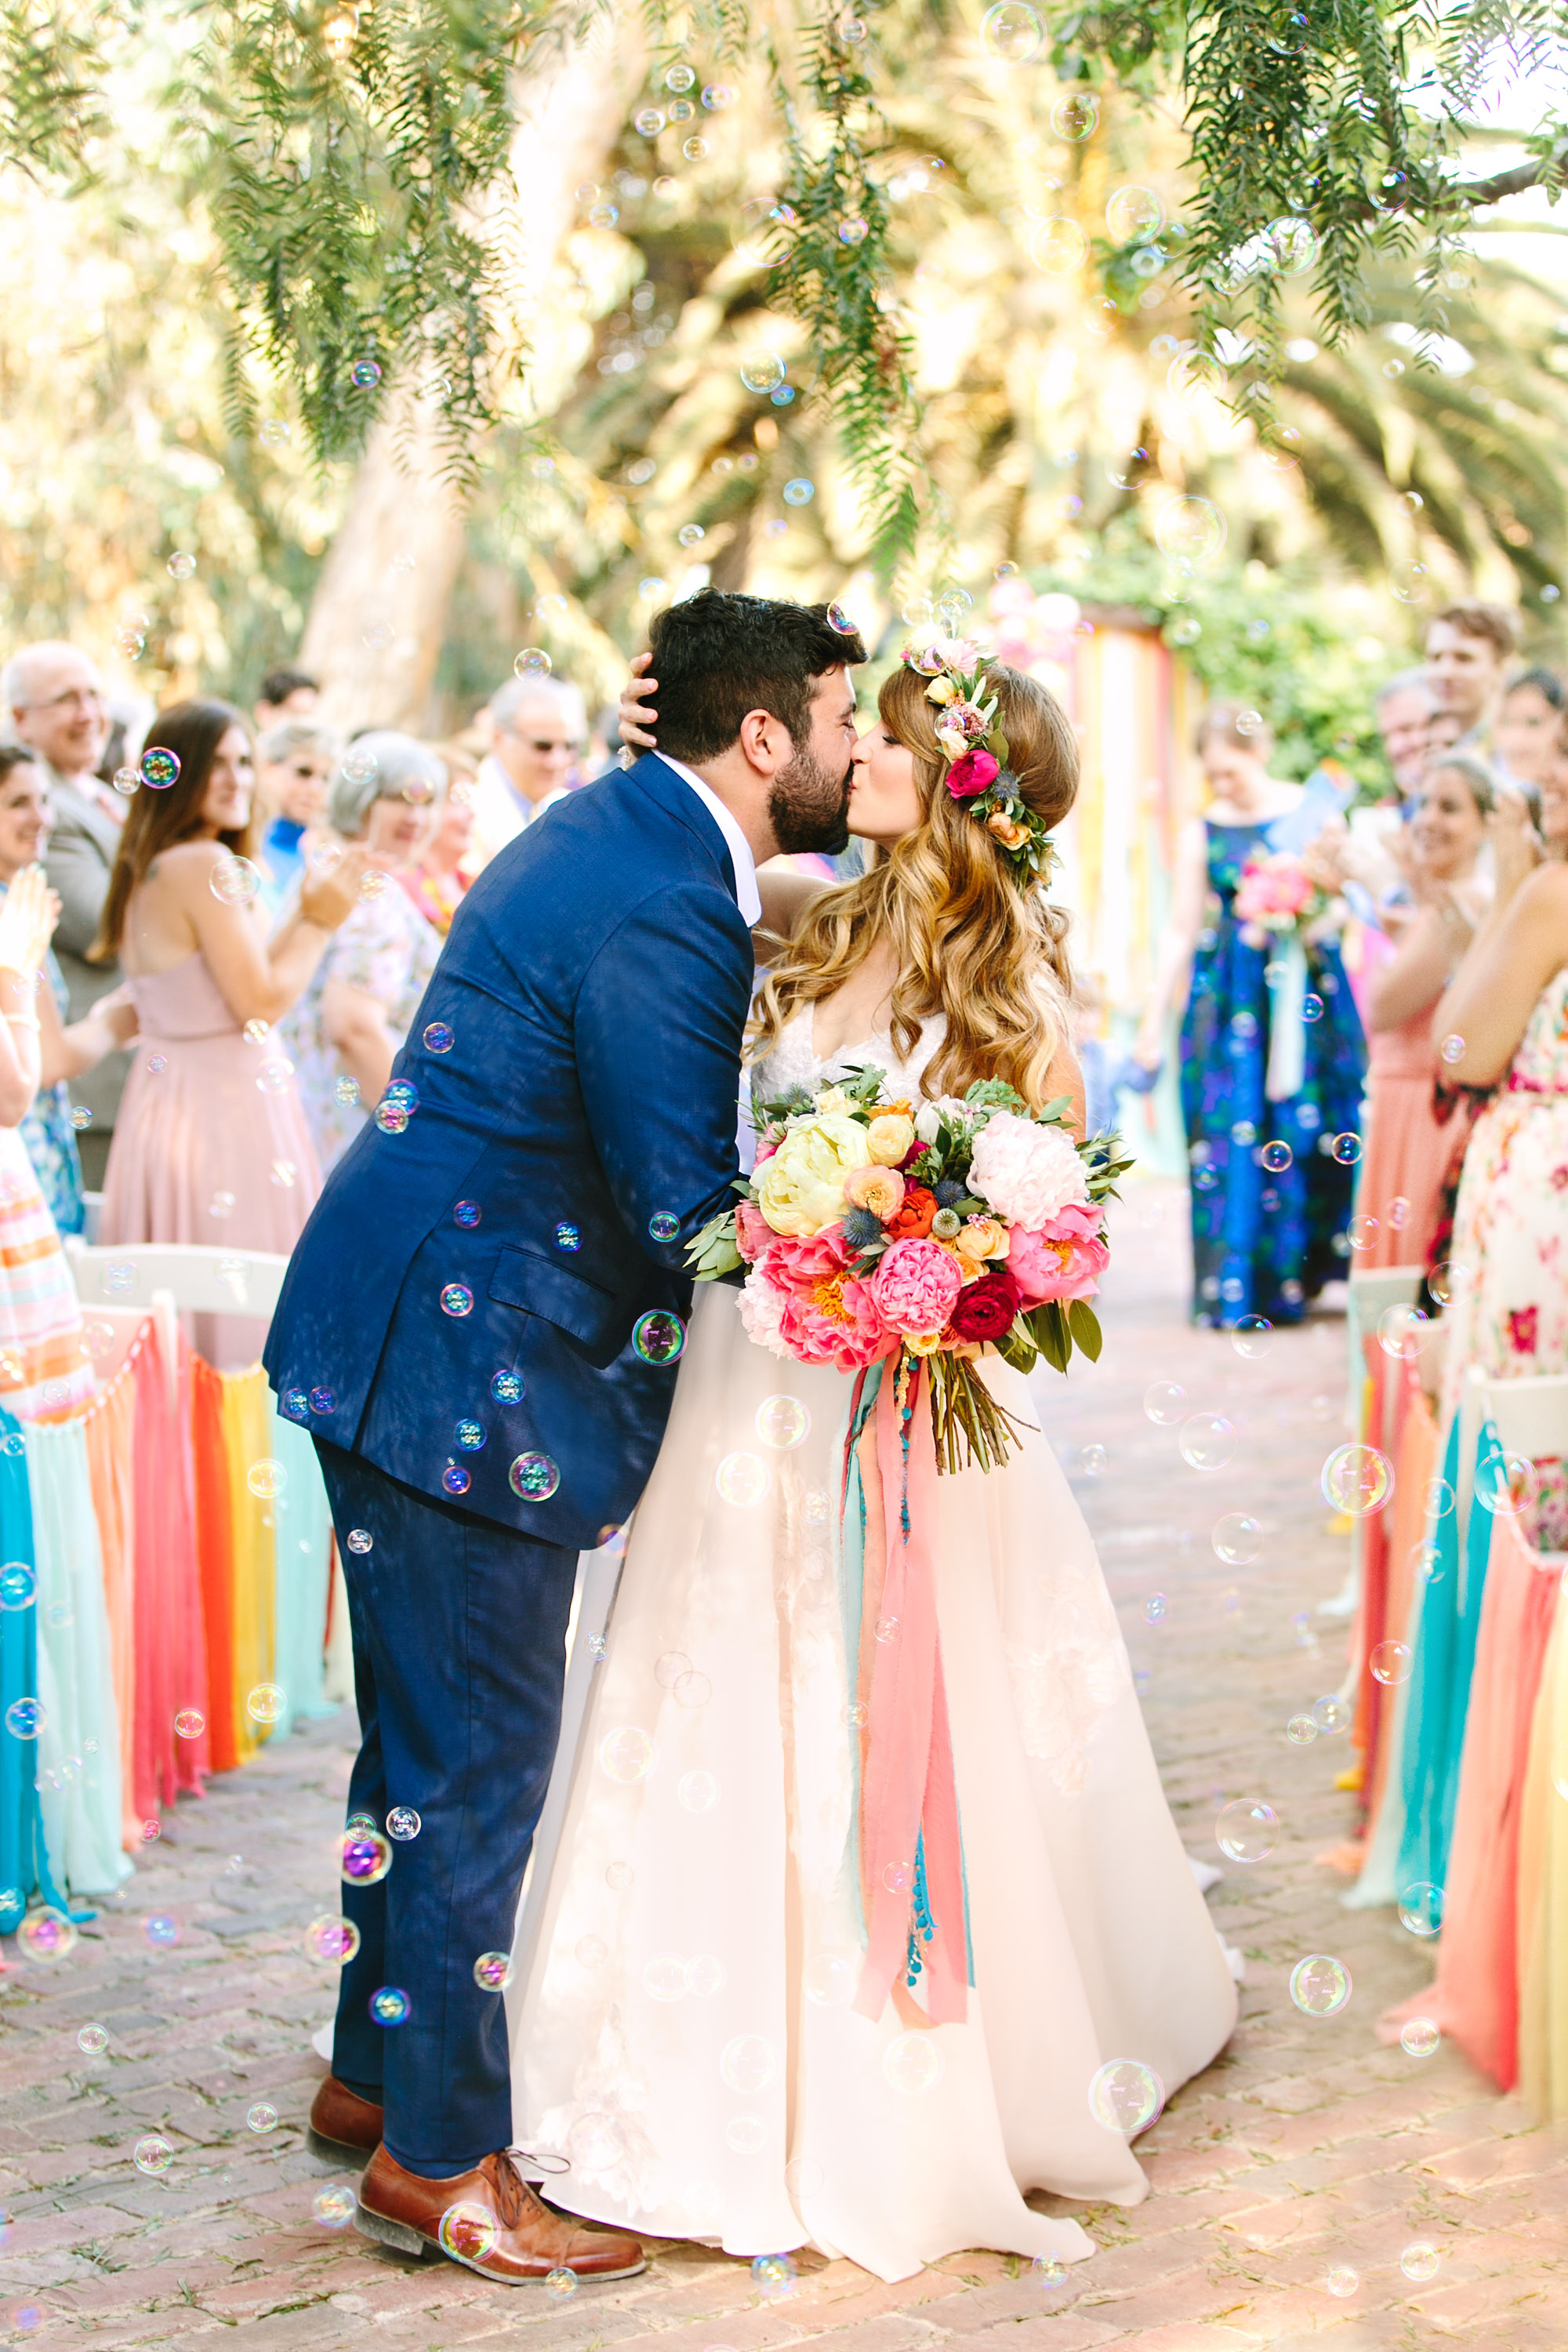 Our Colorful California Wedding at McCormick Home Ranch